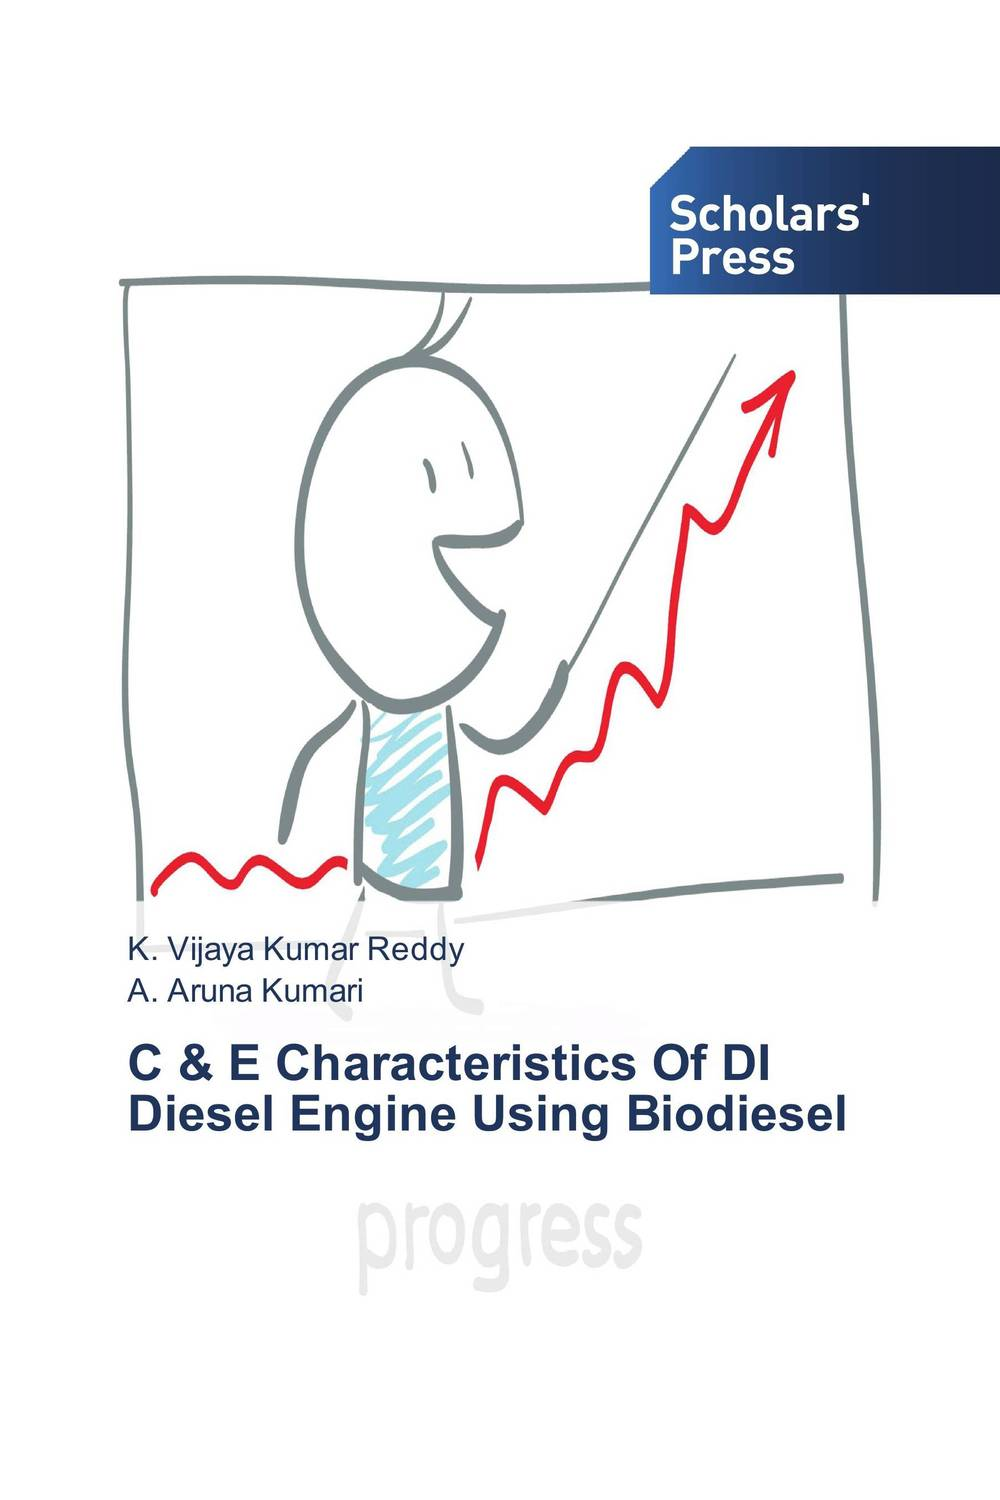 C & E Characteristics Of DI Diesel Engine Using Biodiesel evaluation of bio diesel as a fuel for diesel engine